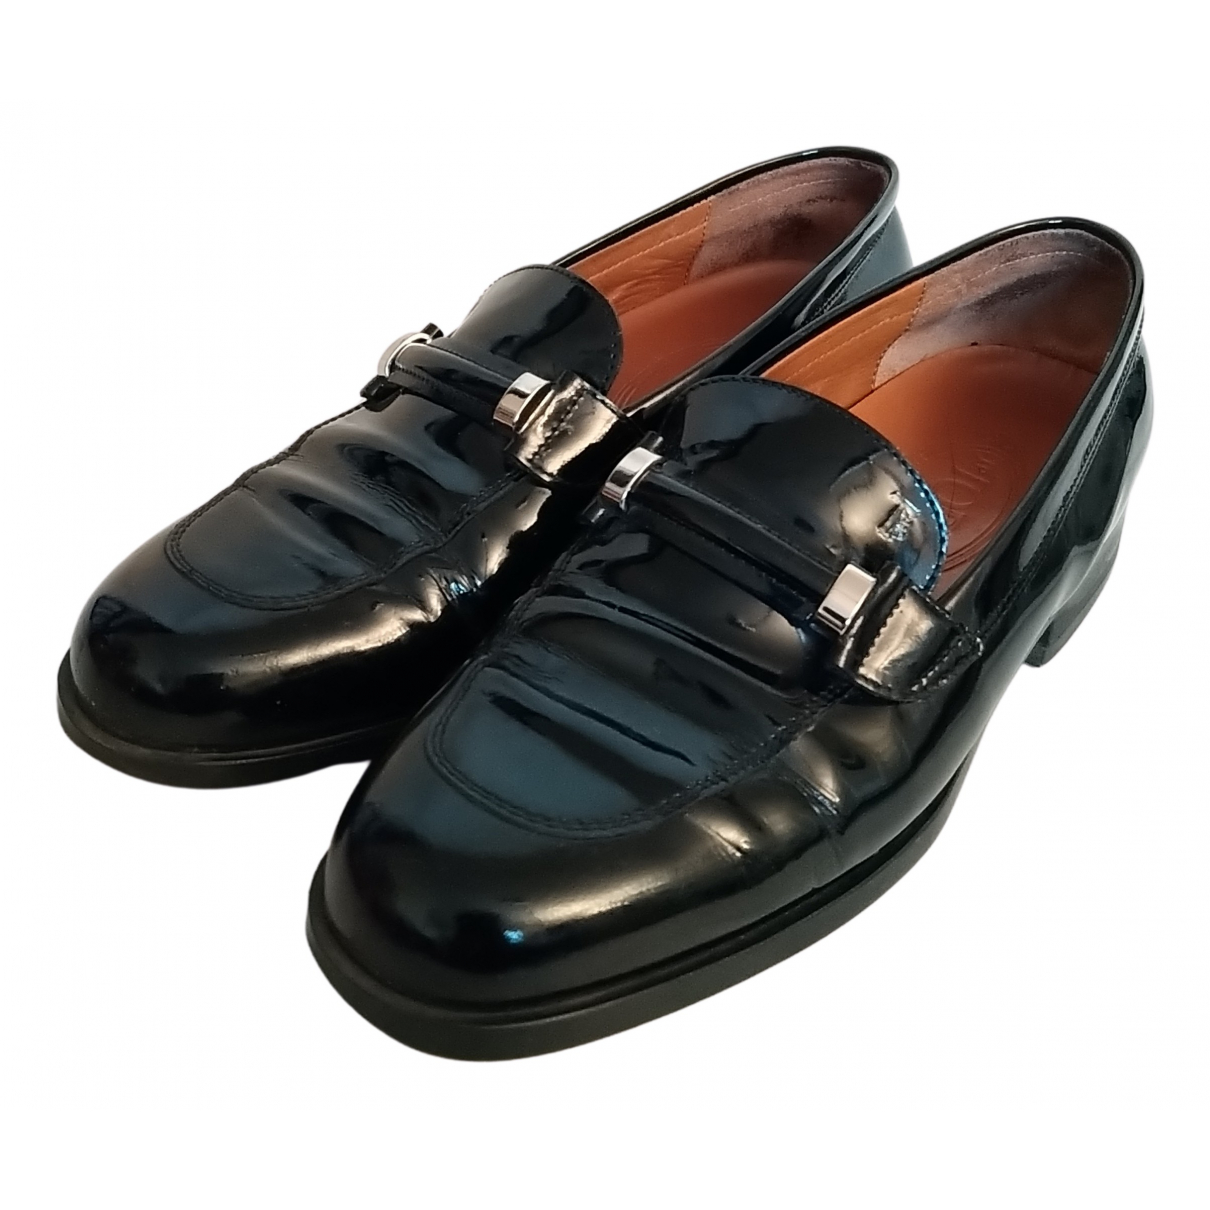 Tod's Gommino Black Patent leather Flats for Women 37.5 EU